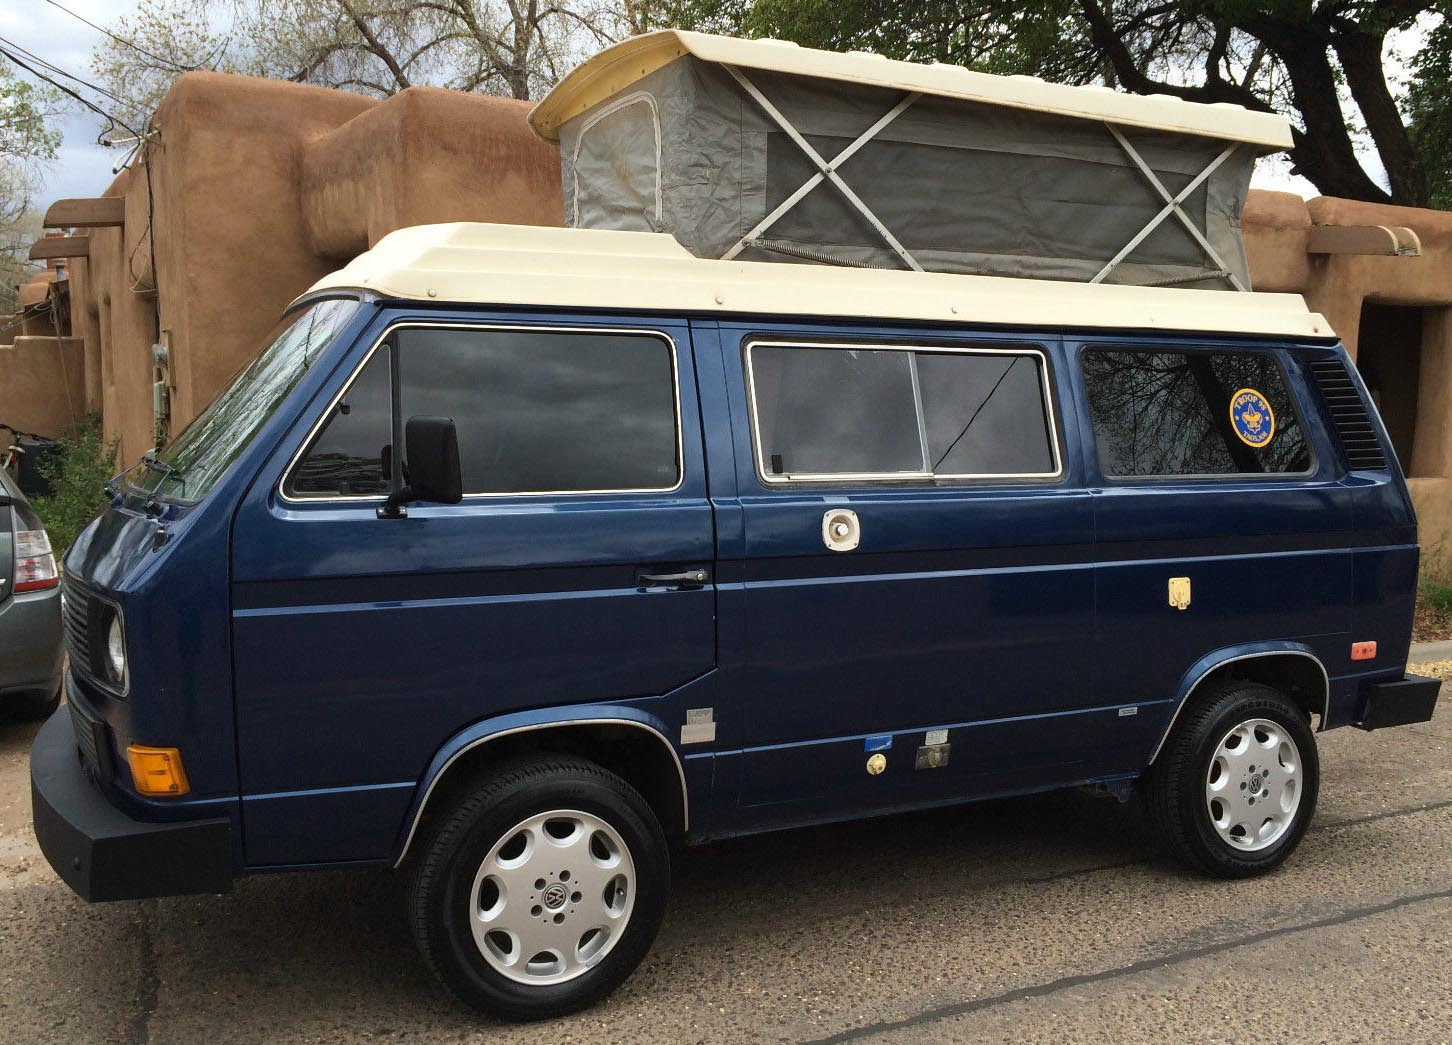 Adventure Subaru Ohio >> 1985 VW Vanagon Riveria w/ 2.2L Subaru - Auction In Taos, NM